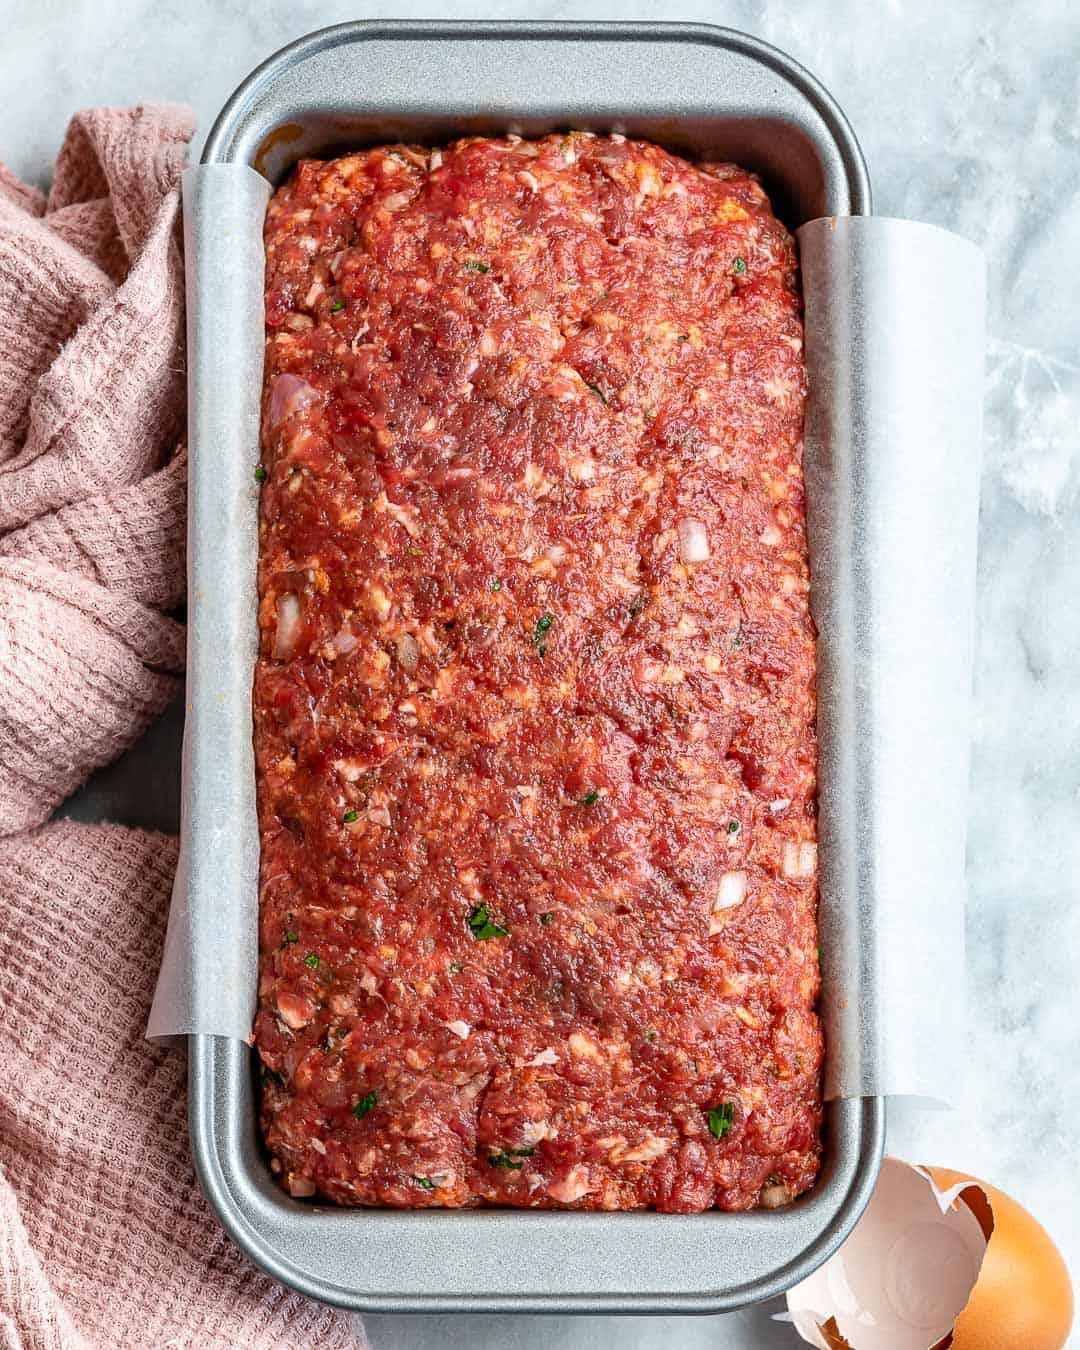 easy meatloaf recipe with beef and breadcrumbs